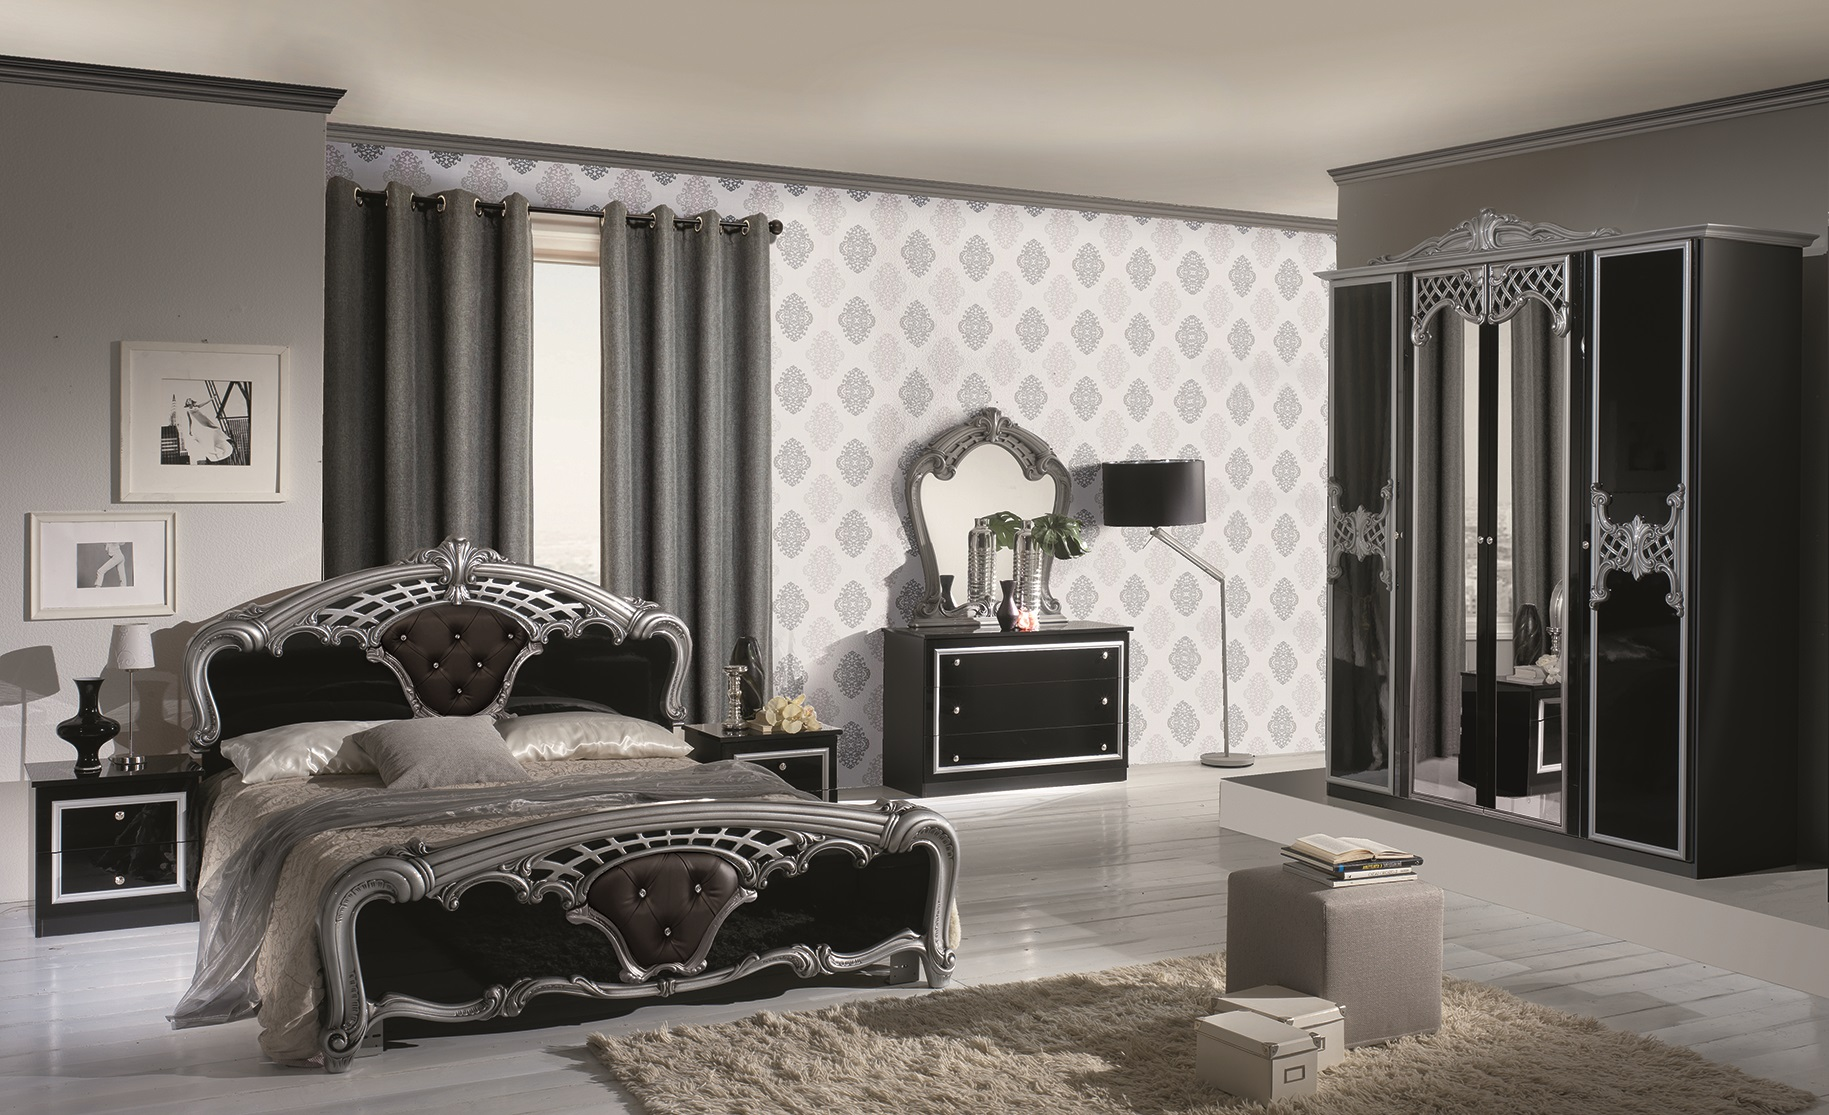 schlafzimmer elisa in weiss gold 6 t rig luxus italienische m be dh ev b g s 6a2x2. Black Bedroom Furniture Sets. Home Design Ideas